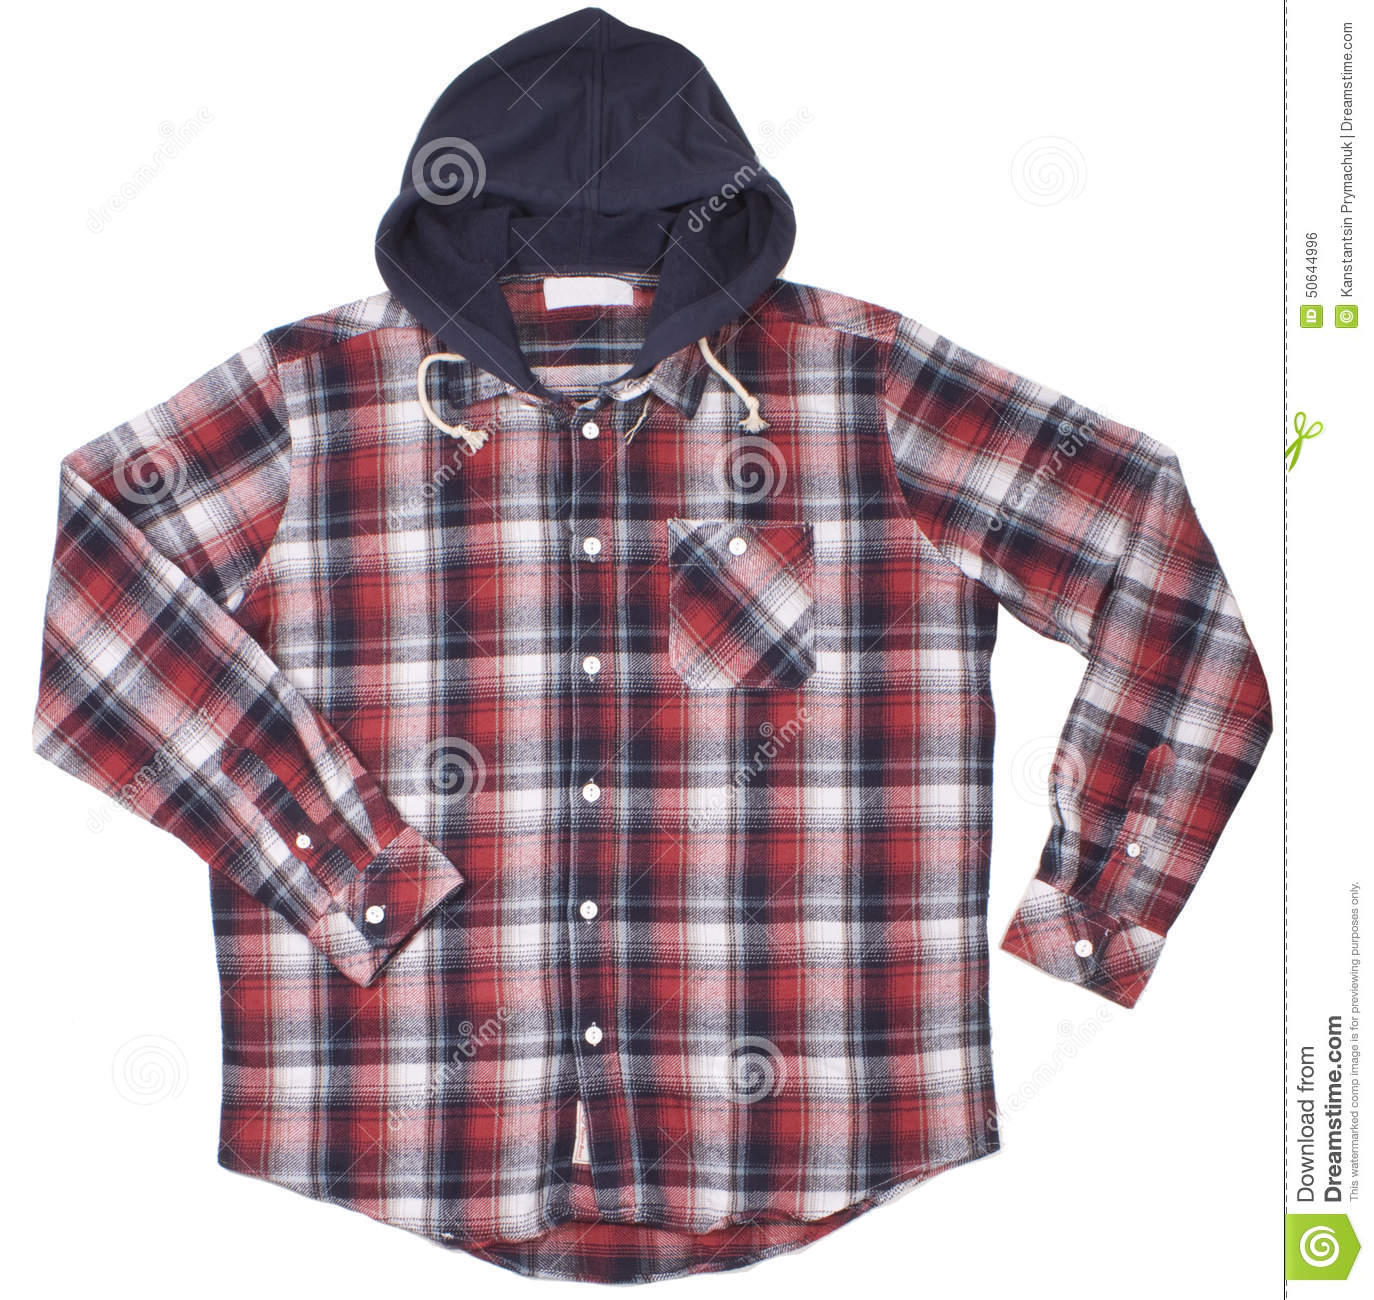 Smeiling Mens Checked Plaid Long Sleeve Button Down Shirts Hooded Shirt